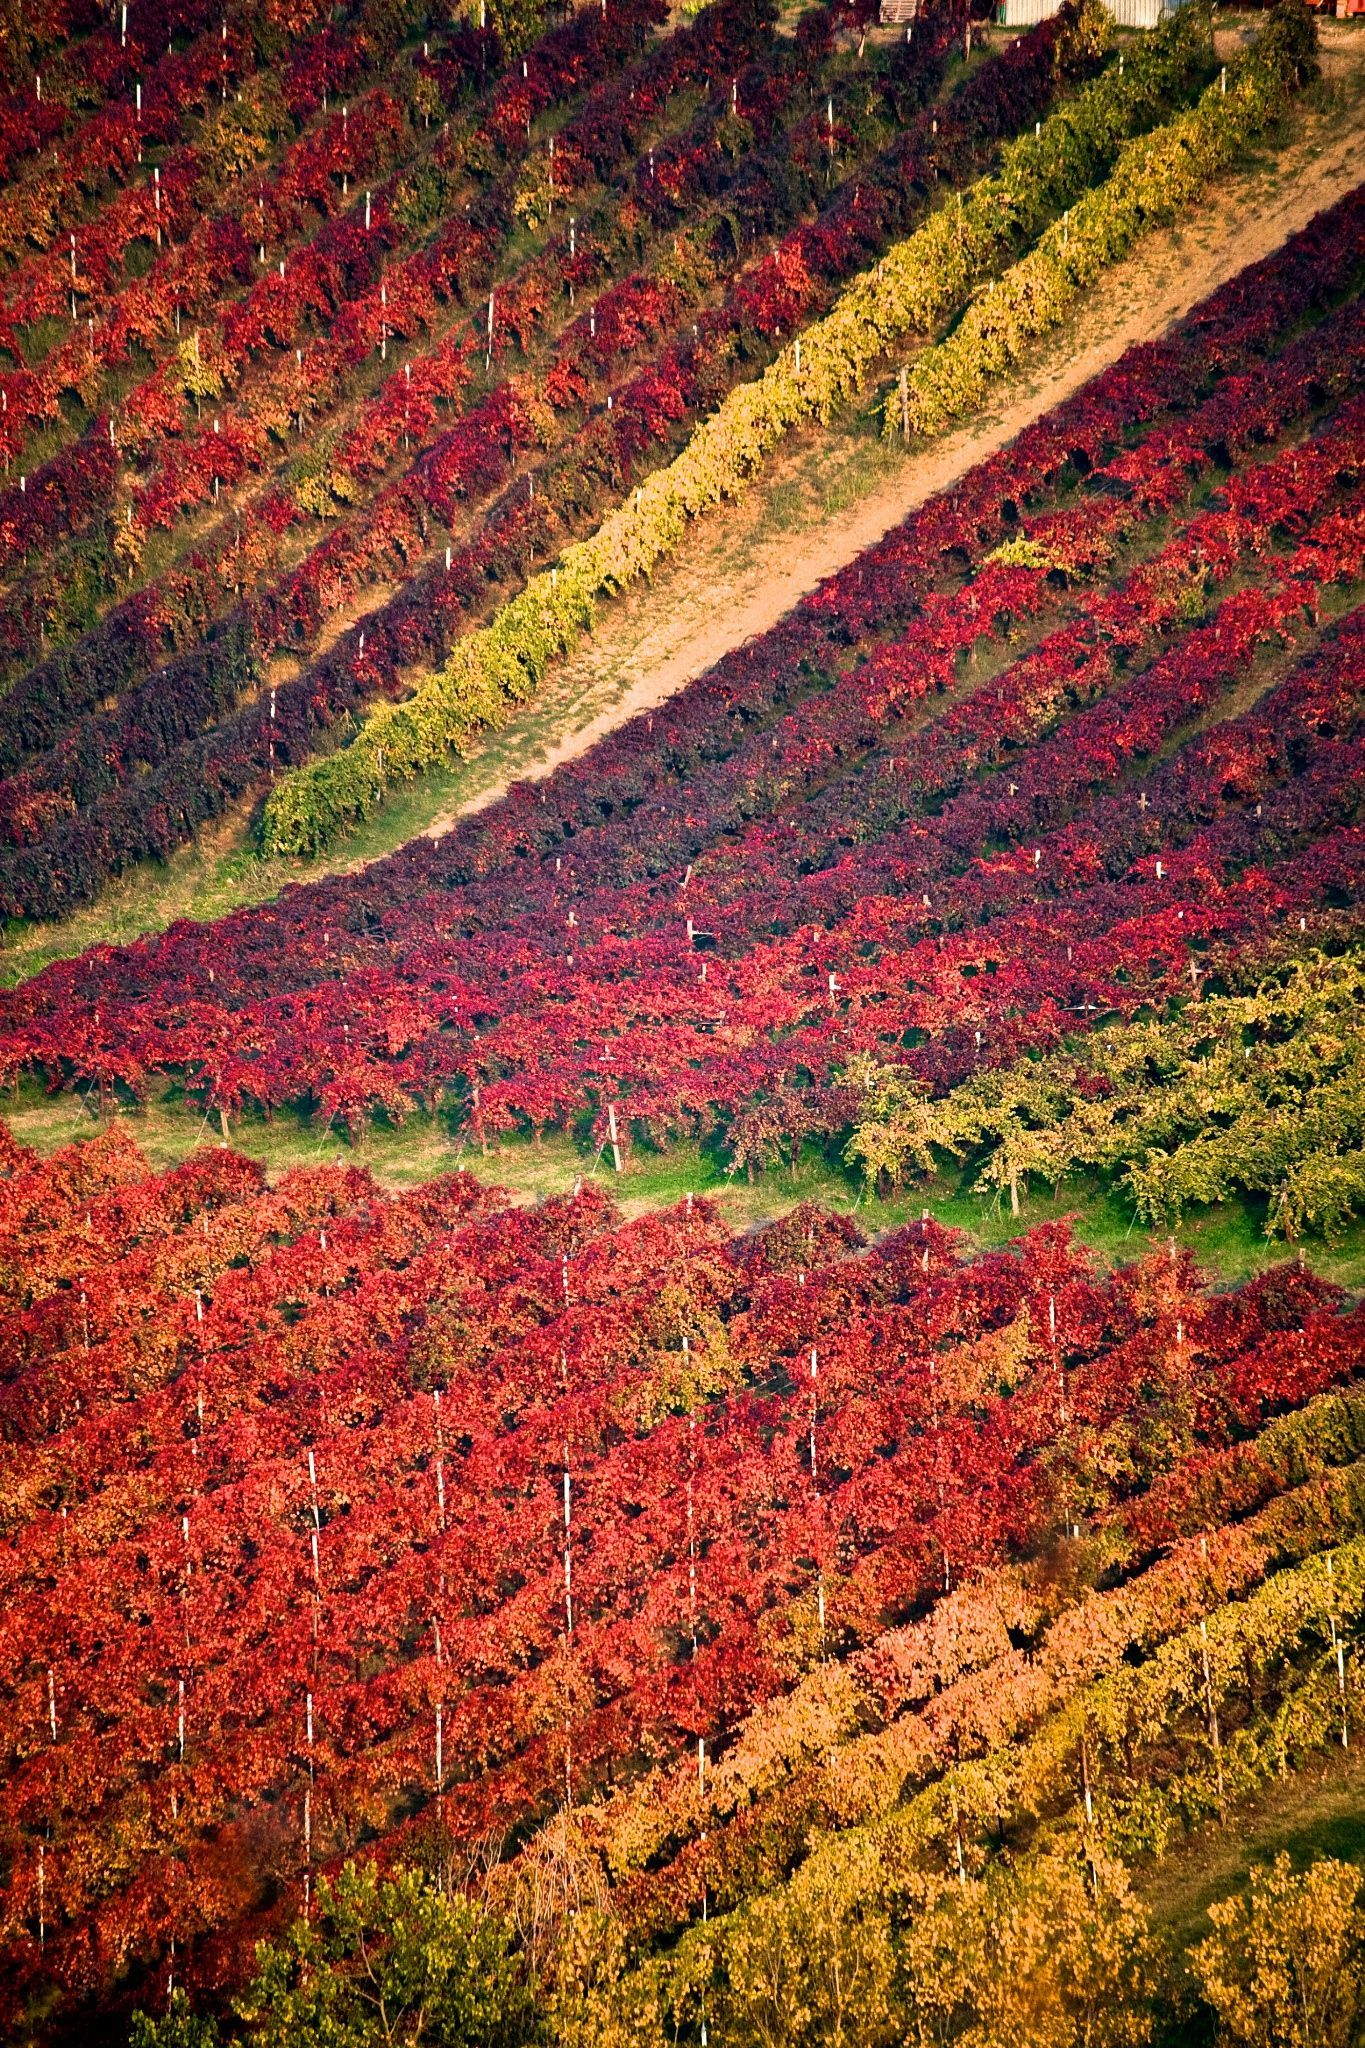 Where To Eat What To See What To Visit And Where To Sleep In Italy The Best Italy Tips To Read In Themonsyeursjournal Com Vineyard Italy Scenery